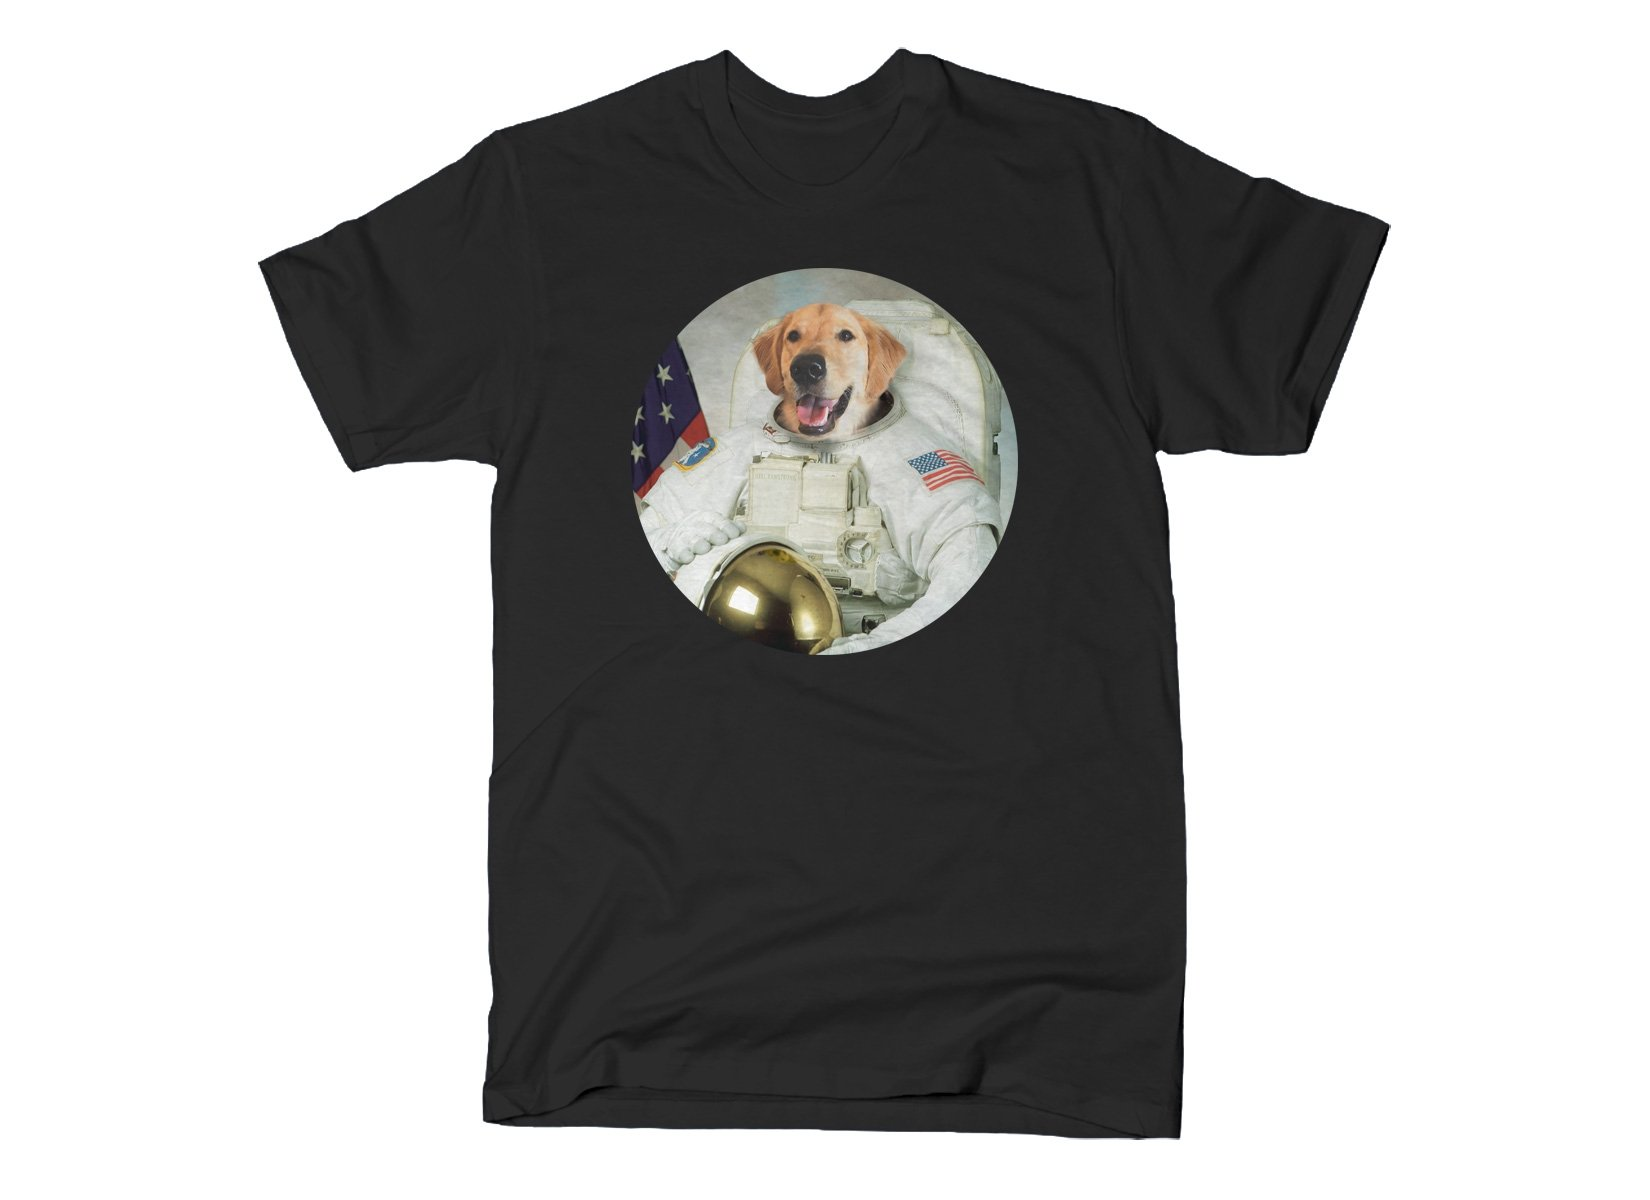 Astrodog on Mens T-Shirt